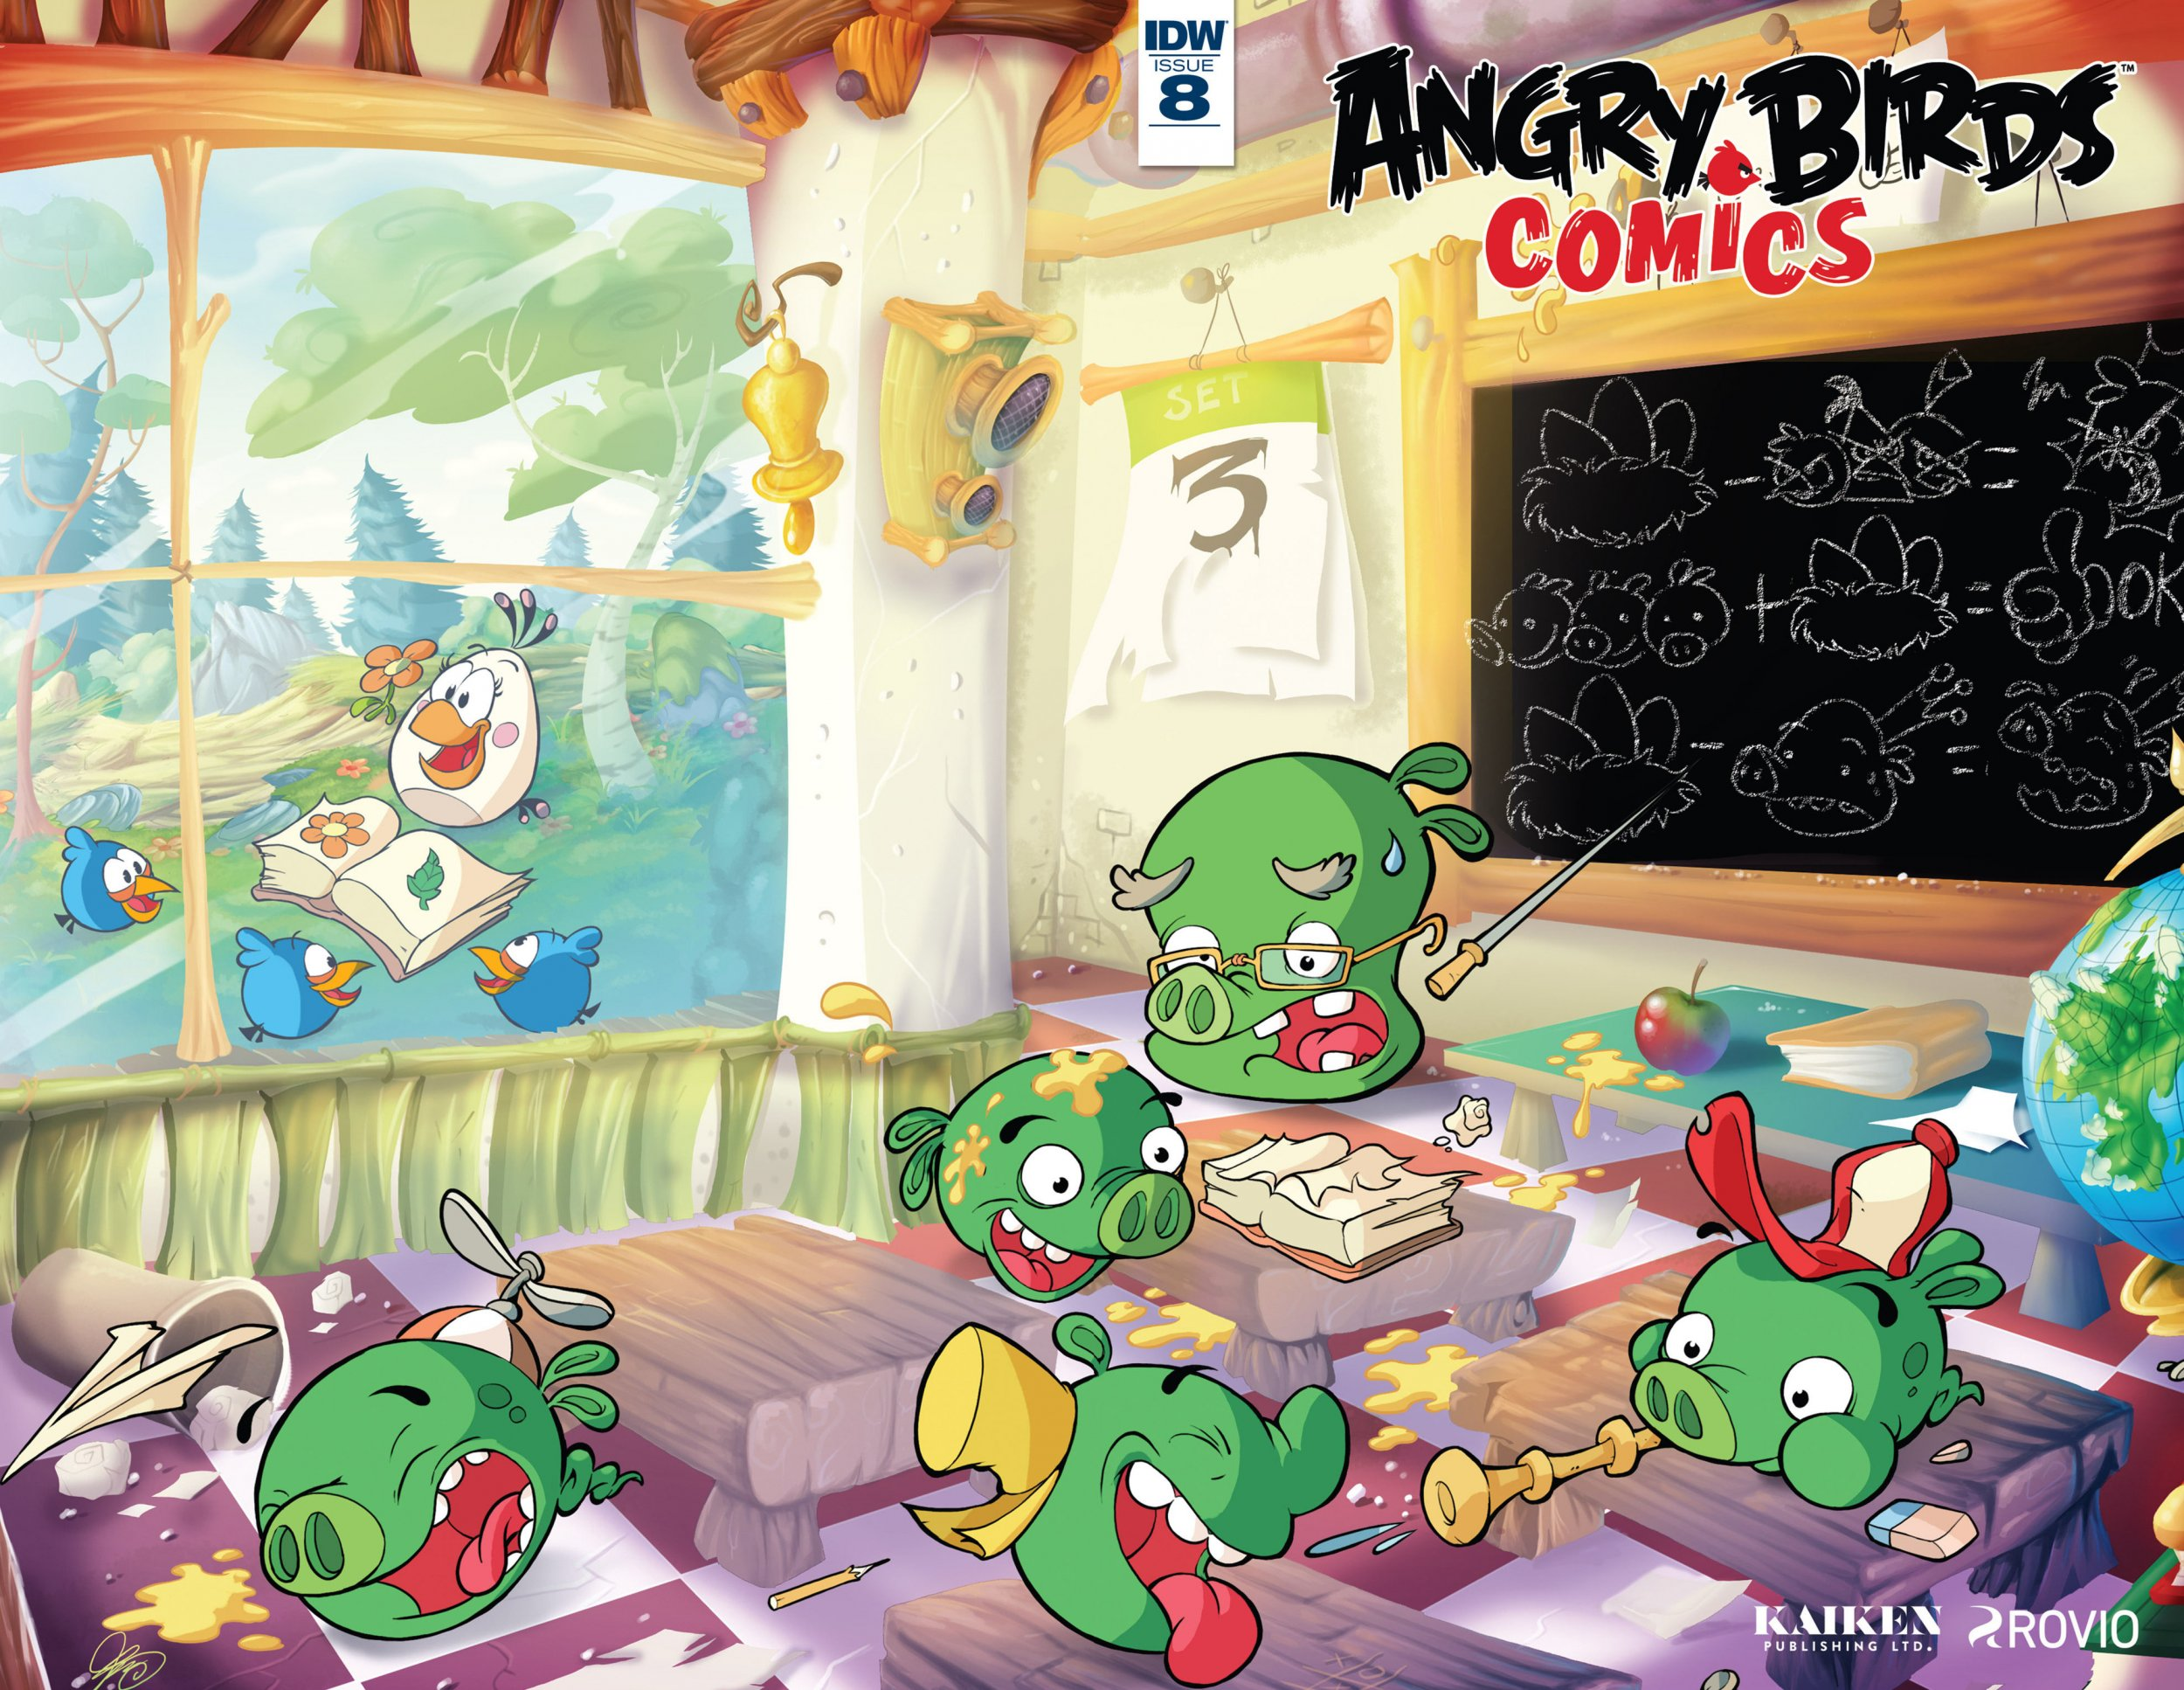 Angry Birds Comics Vol.2 008 (August 2016)